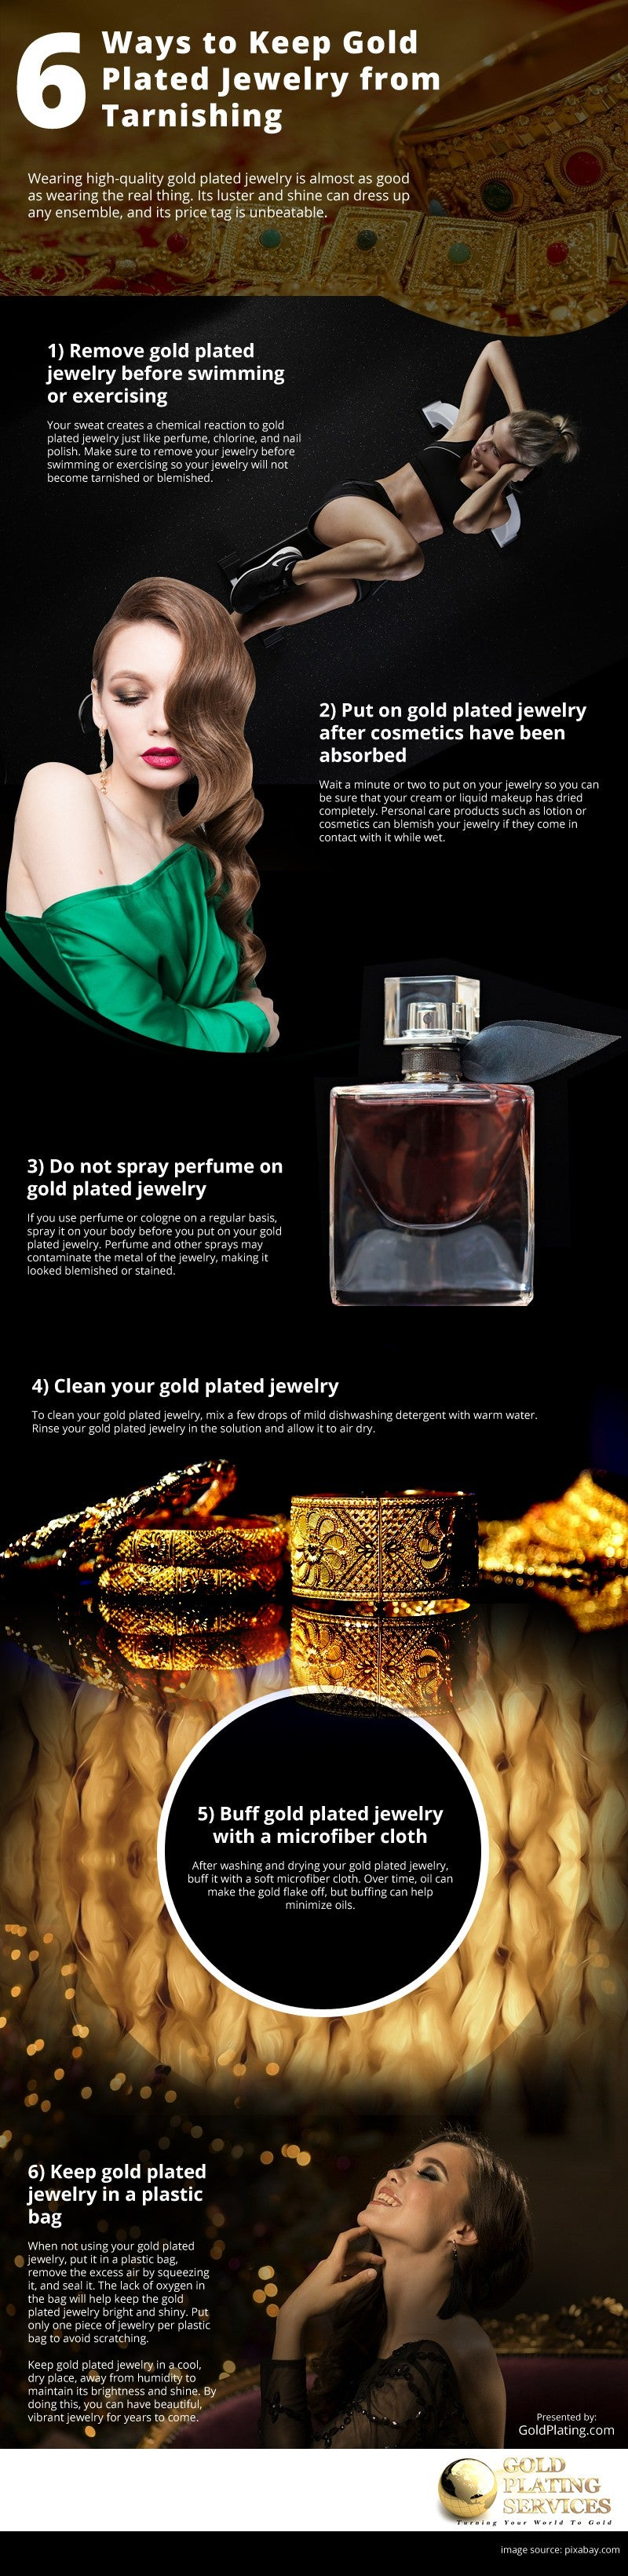 6 Ways to Keep Gold Plated Jewelry from Tarnishing [infographic]